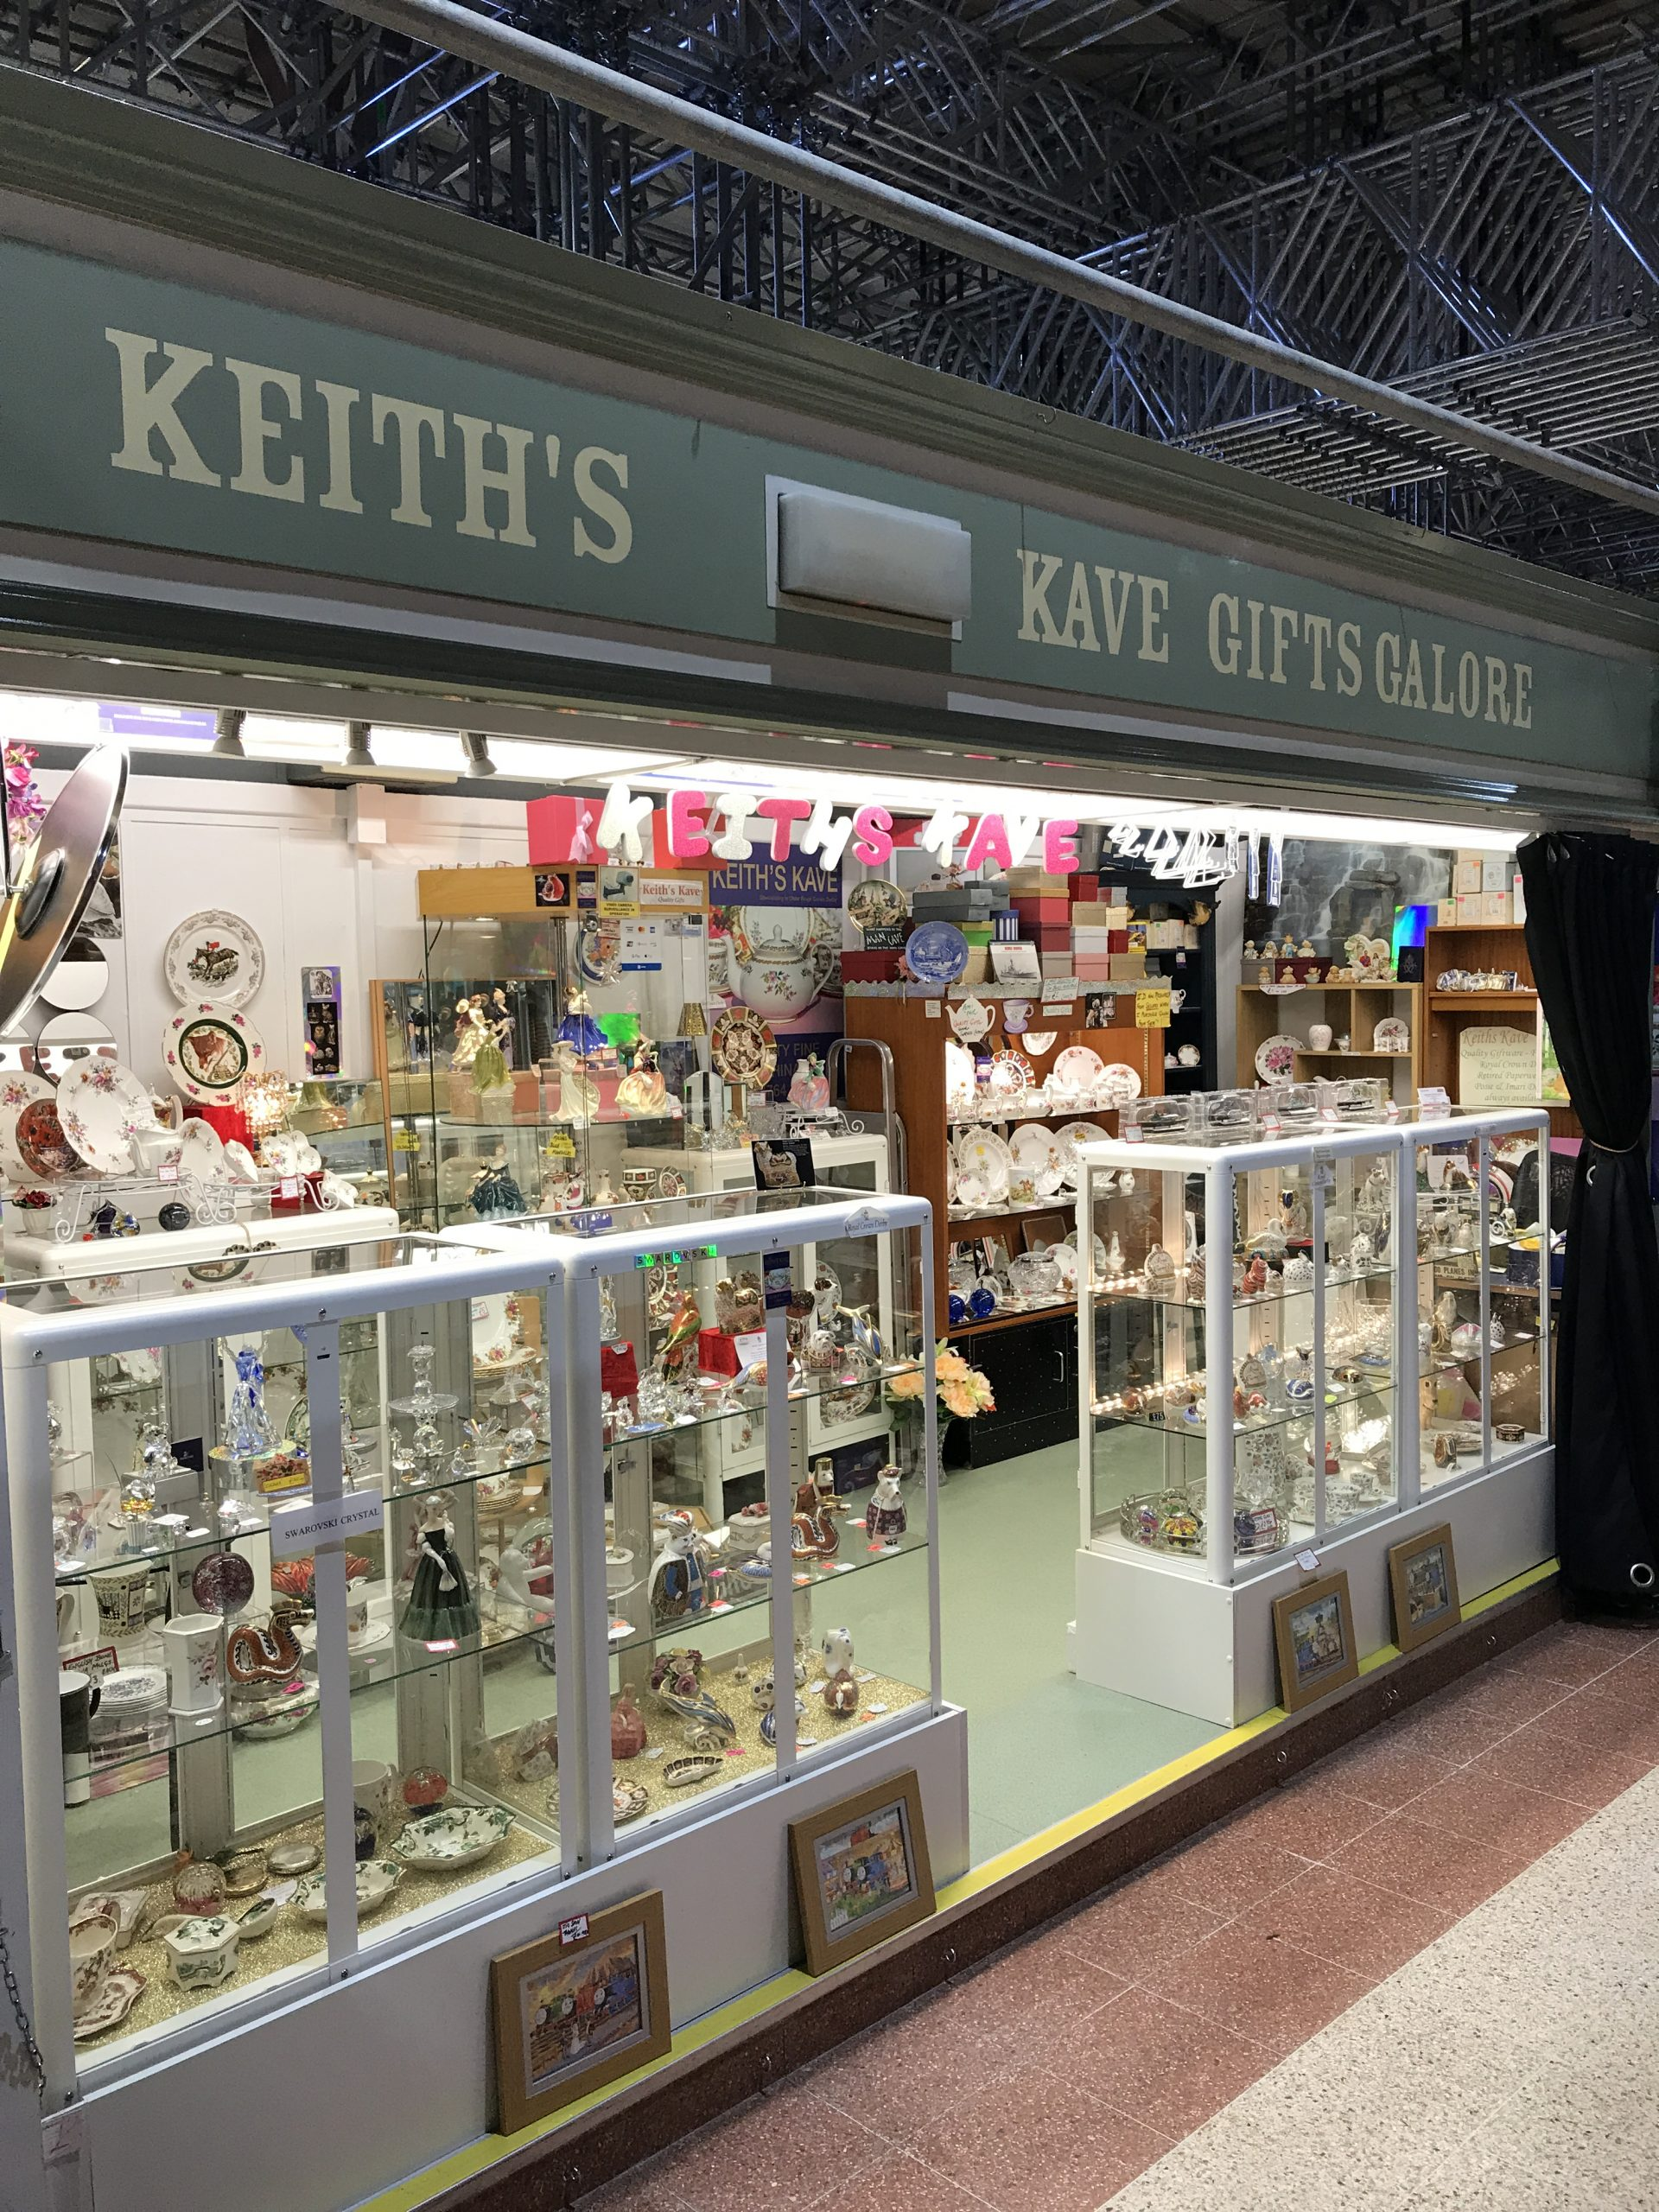 Keith's Kave